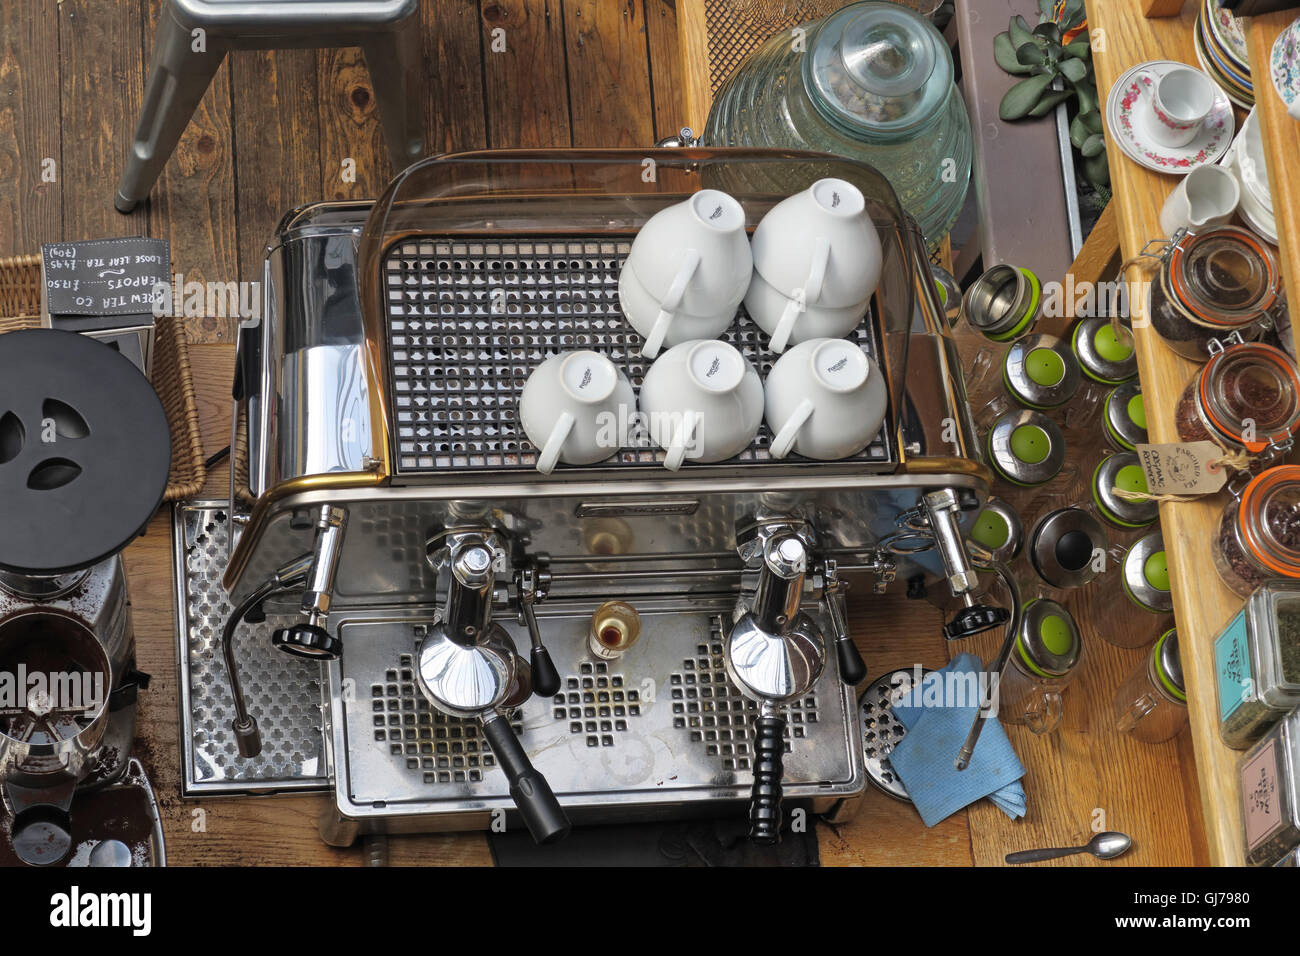 Coffee Machine, Manchester Craft and Design Centre Cafe, 17 Oak St, Manchester, UK M4 5JD - Stock Image